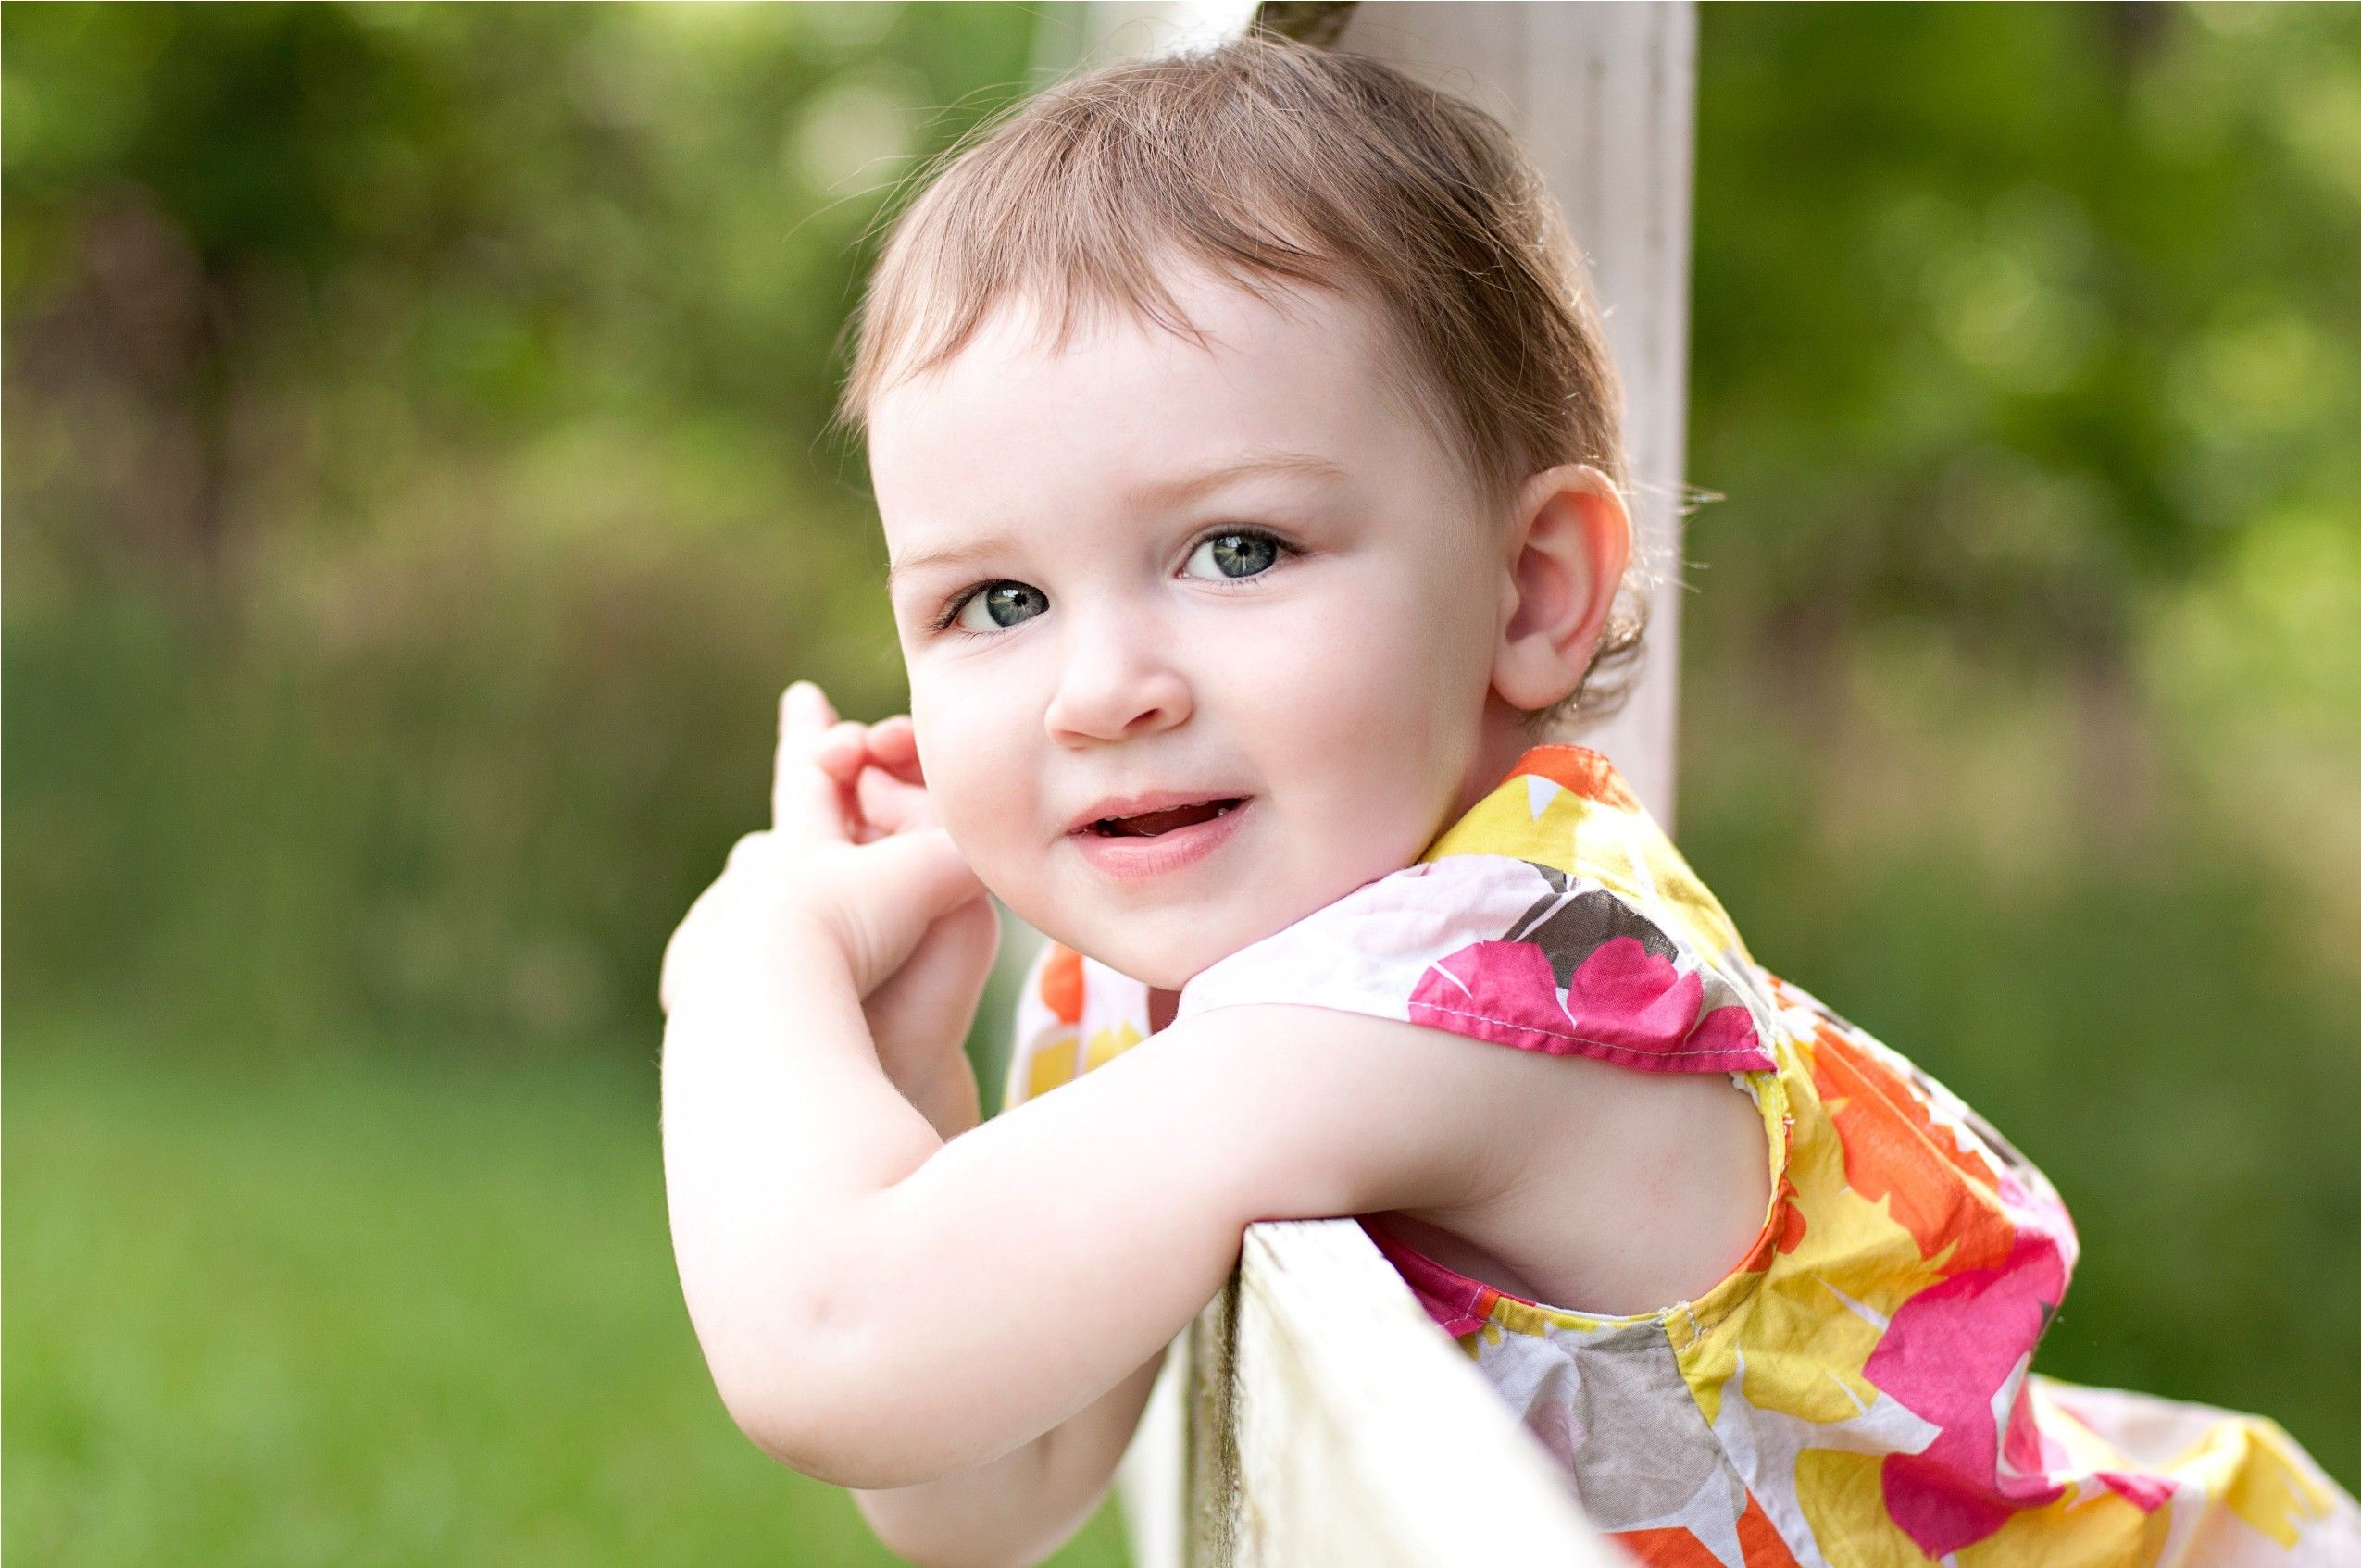 beautiful baby girl wallpapers Desktop Wallpapers Pinterest Baby girl wallpaper, Wallpaper ...